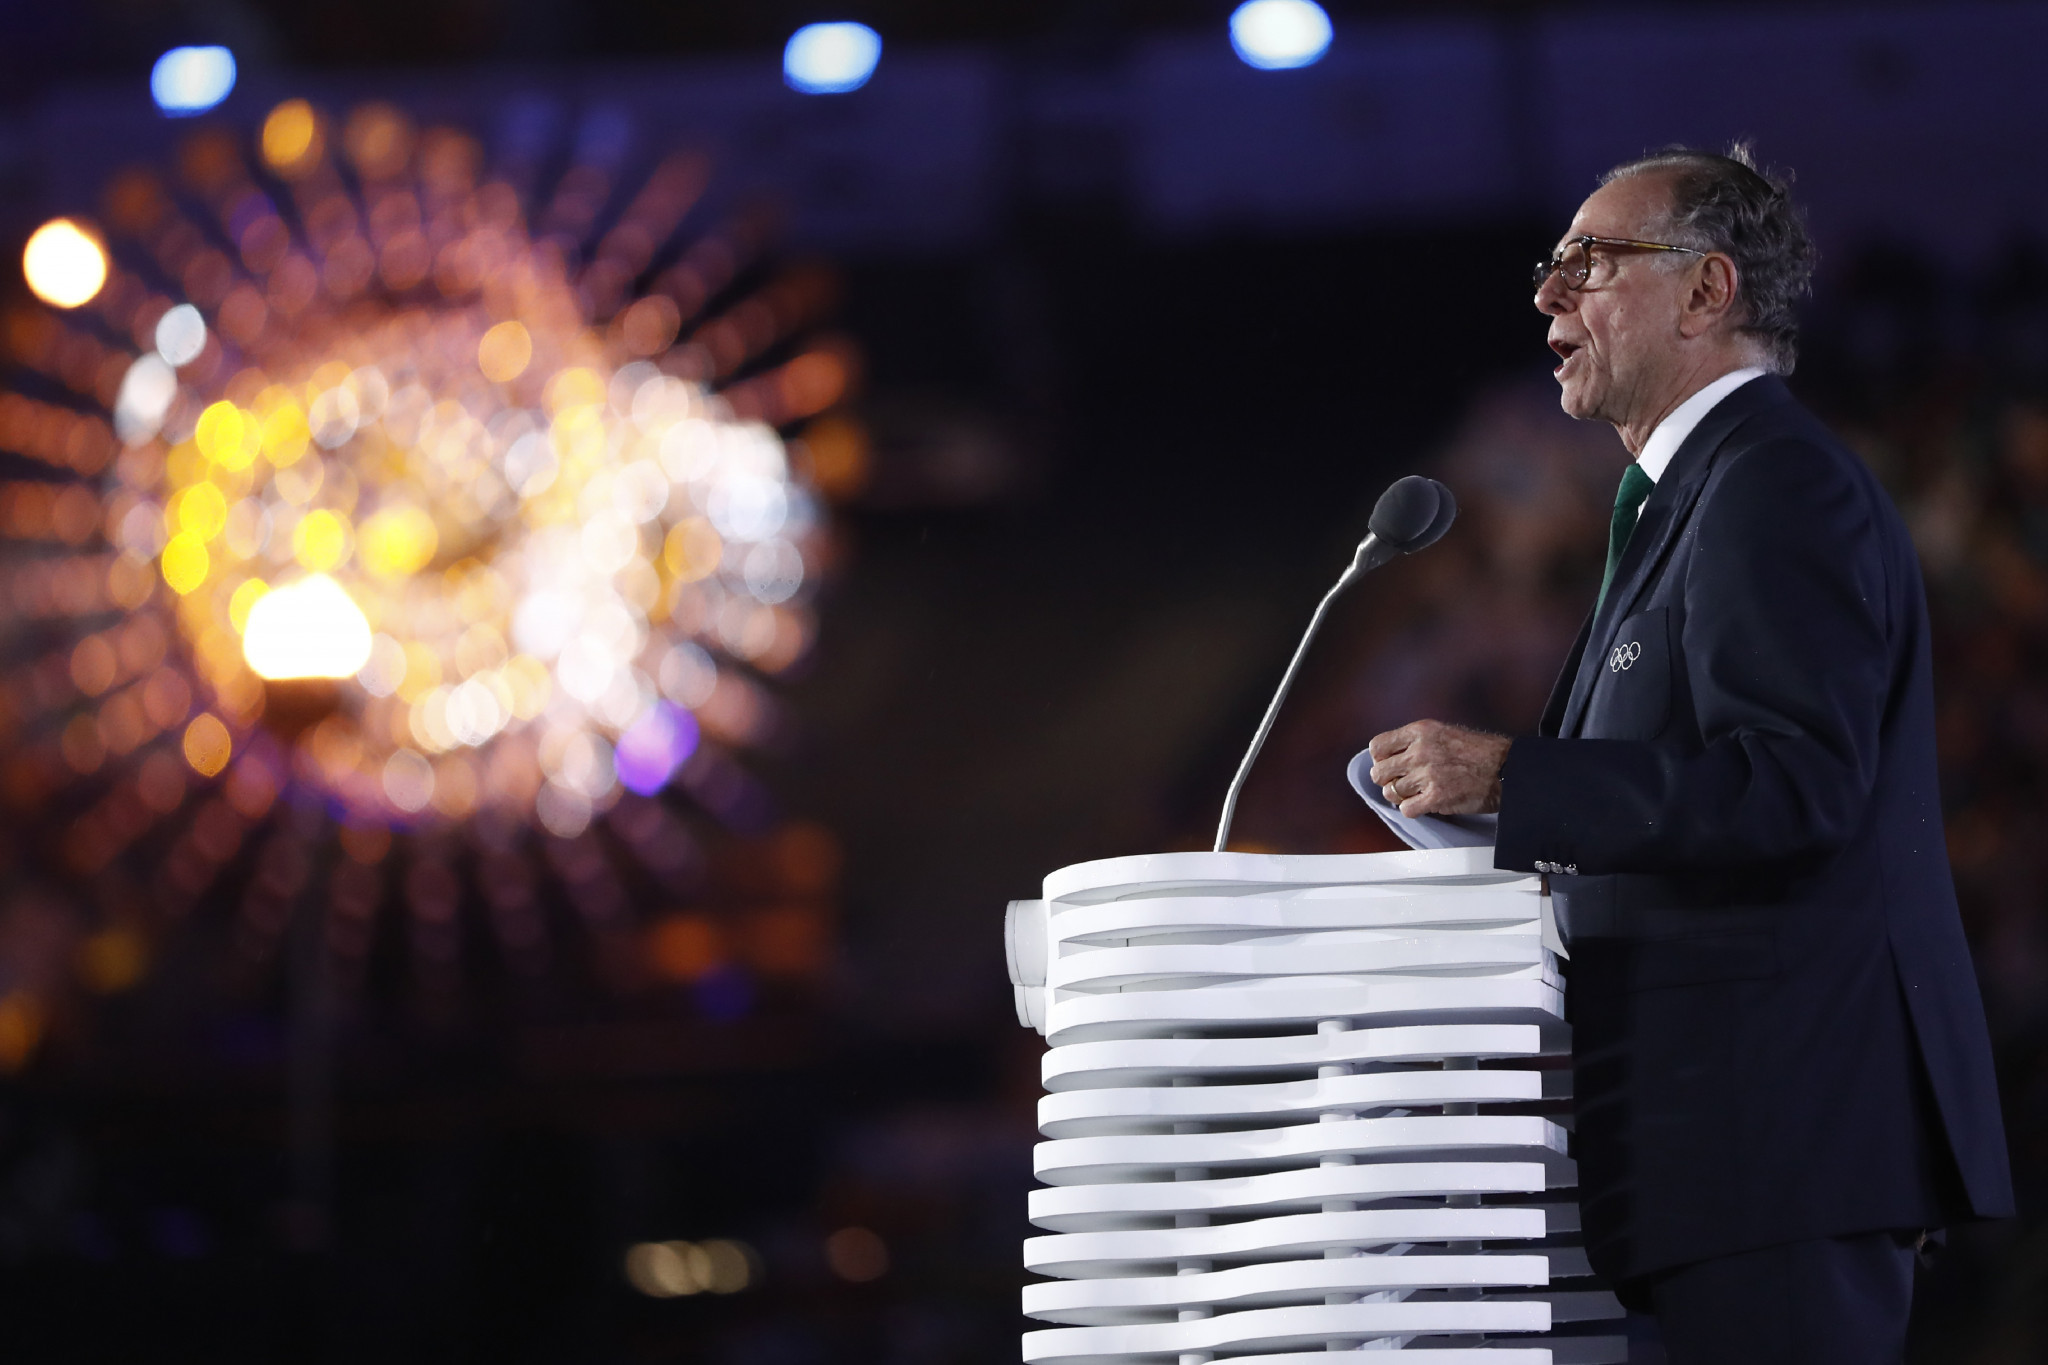 Carlos Nuzman pictured speaking at the Closing Ceremony of the Rio 2016 Olympic Games ©Getty Images